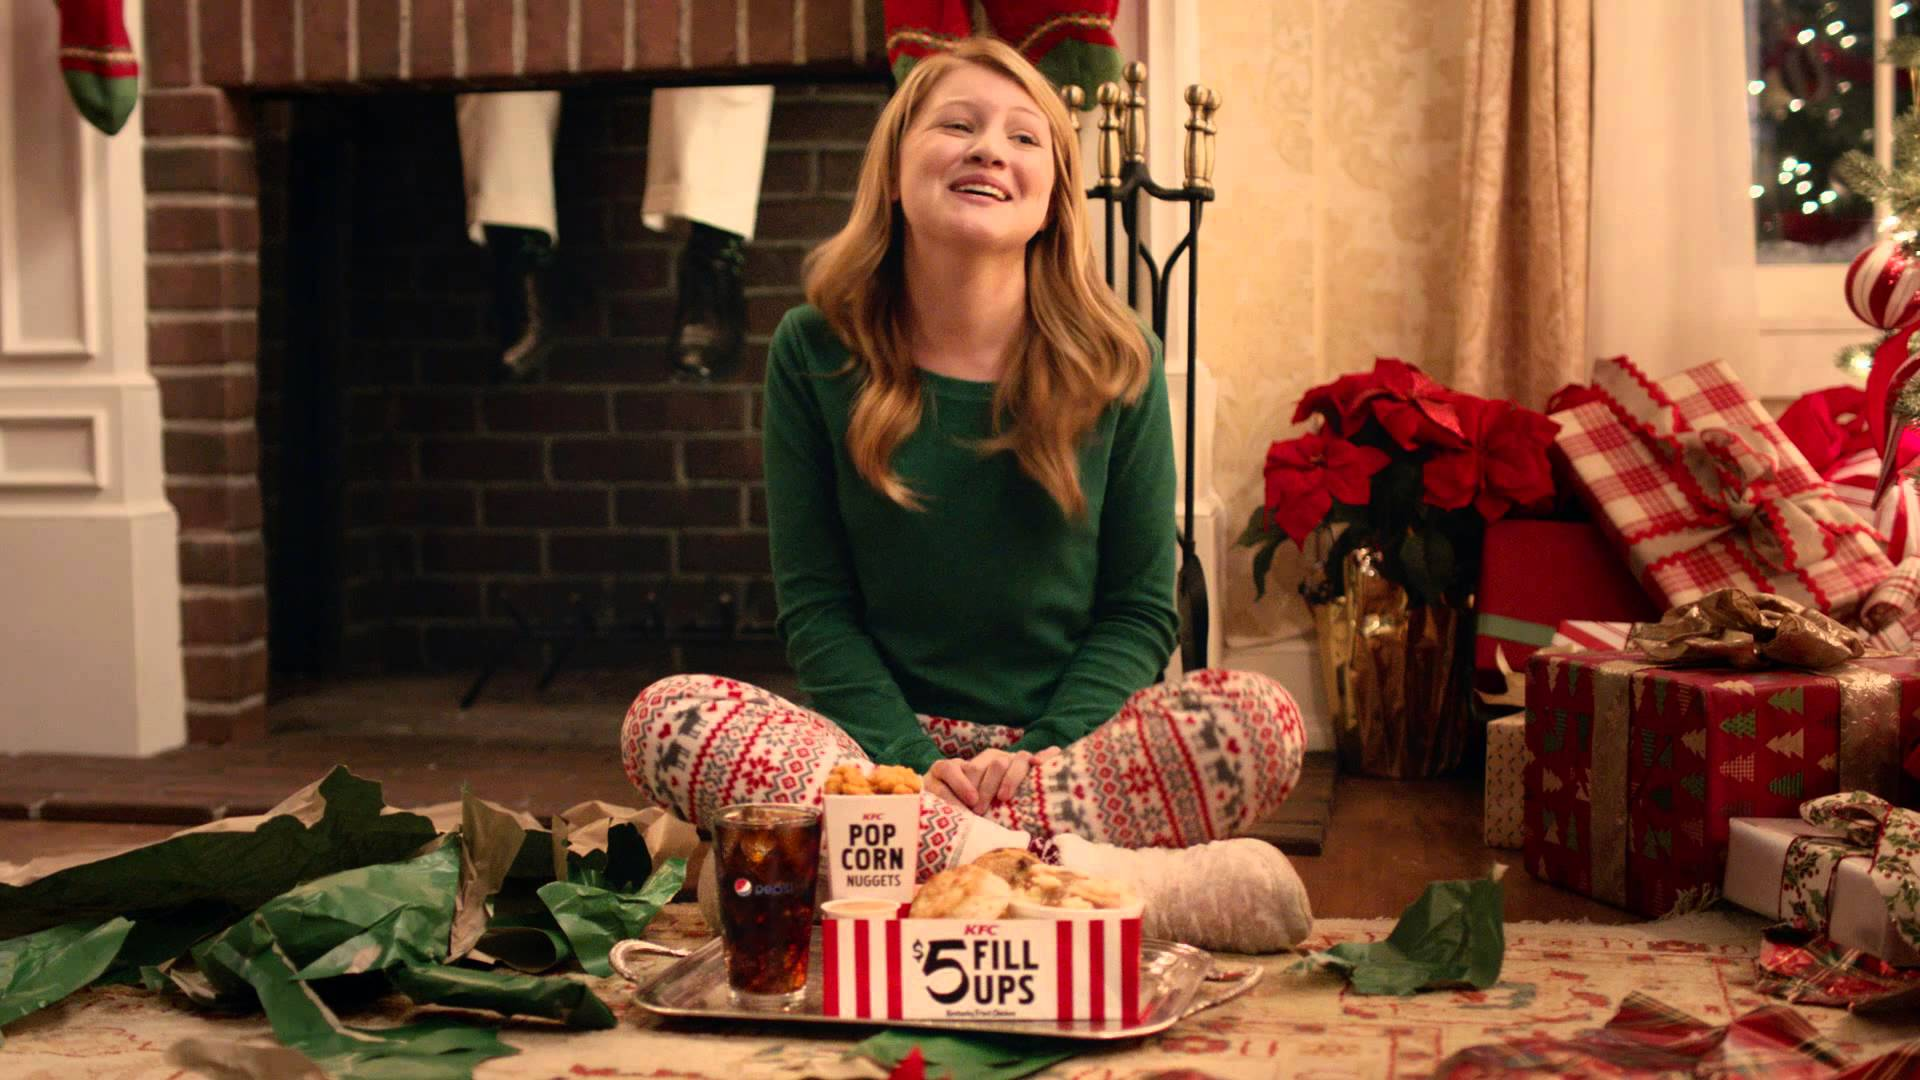 KFC: Christmas gifts - DAILY COMMERCIALS